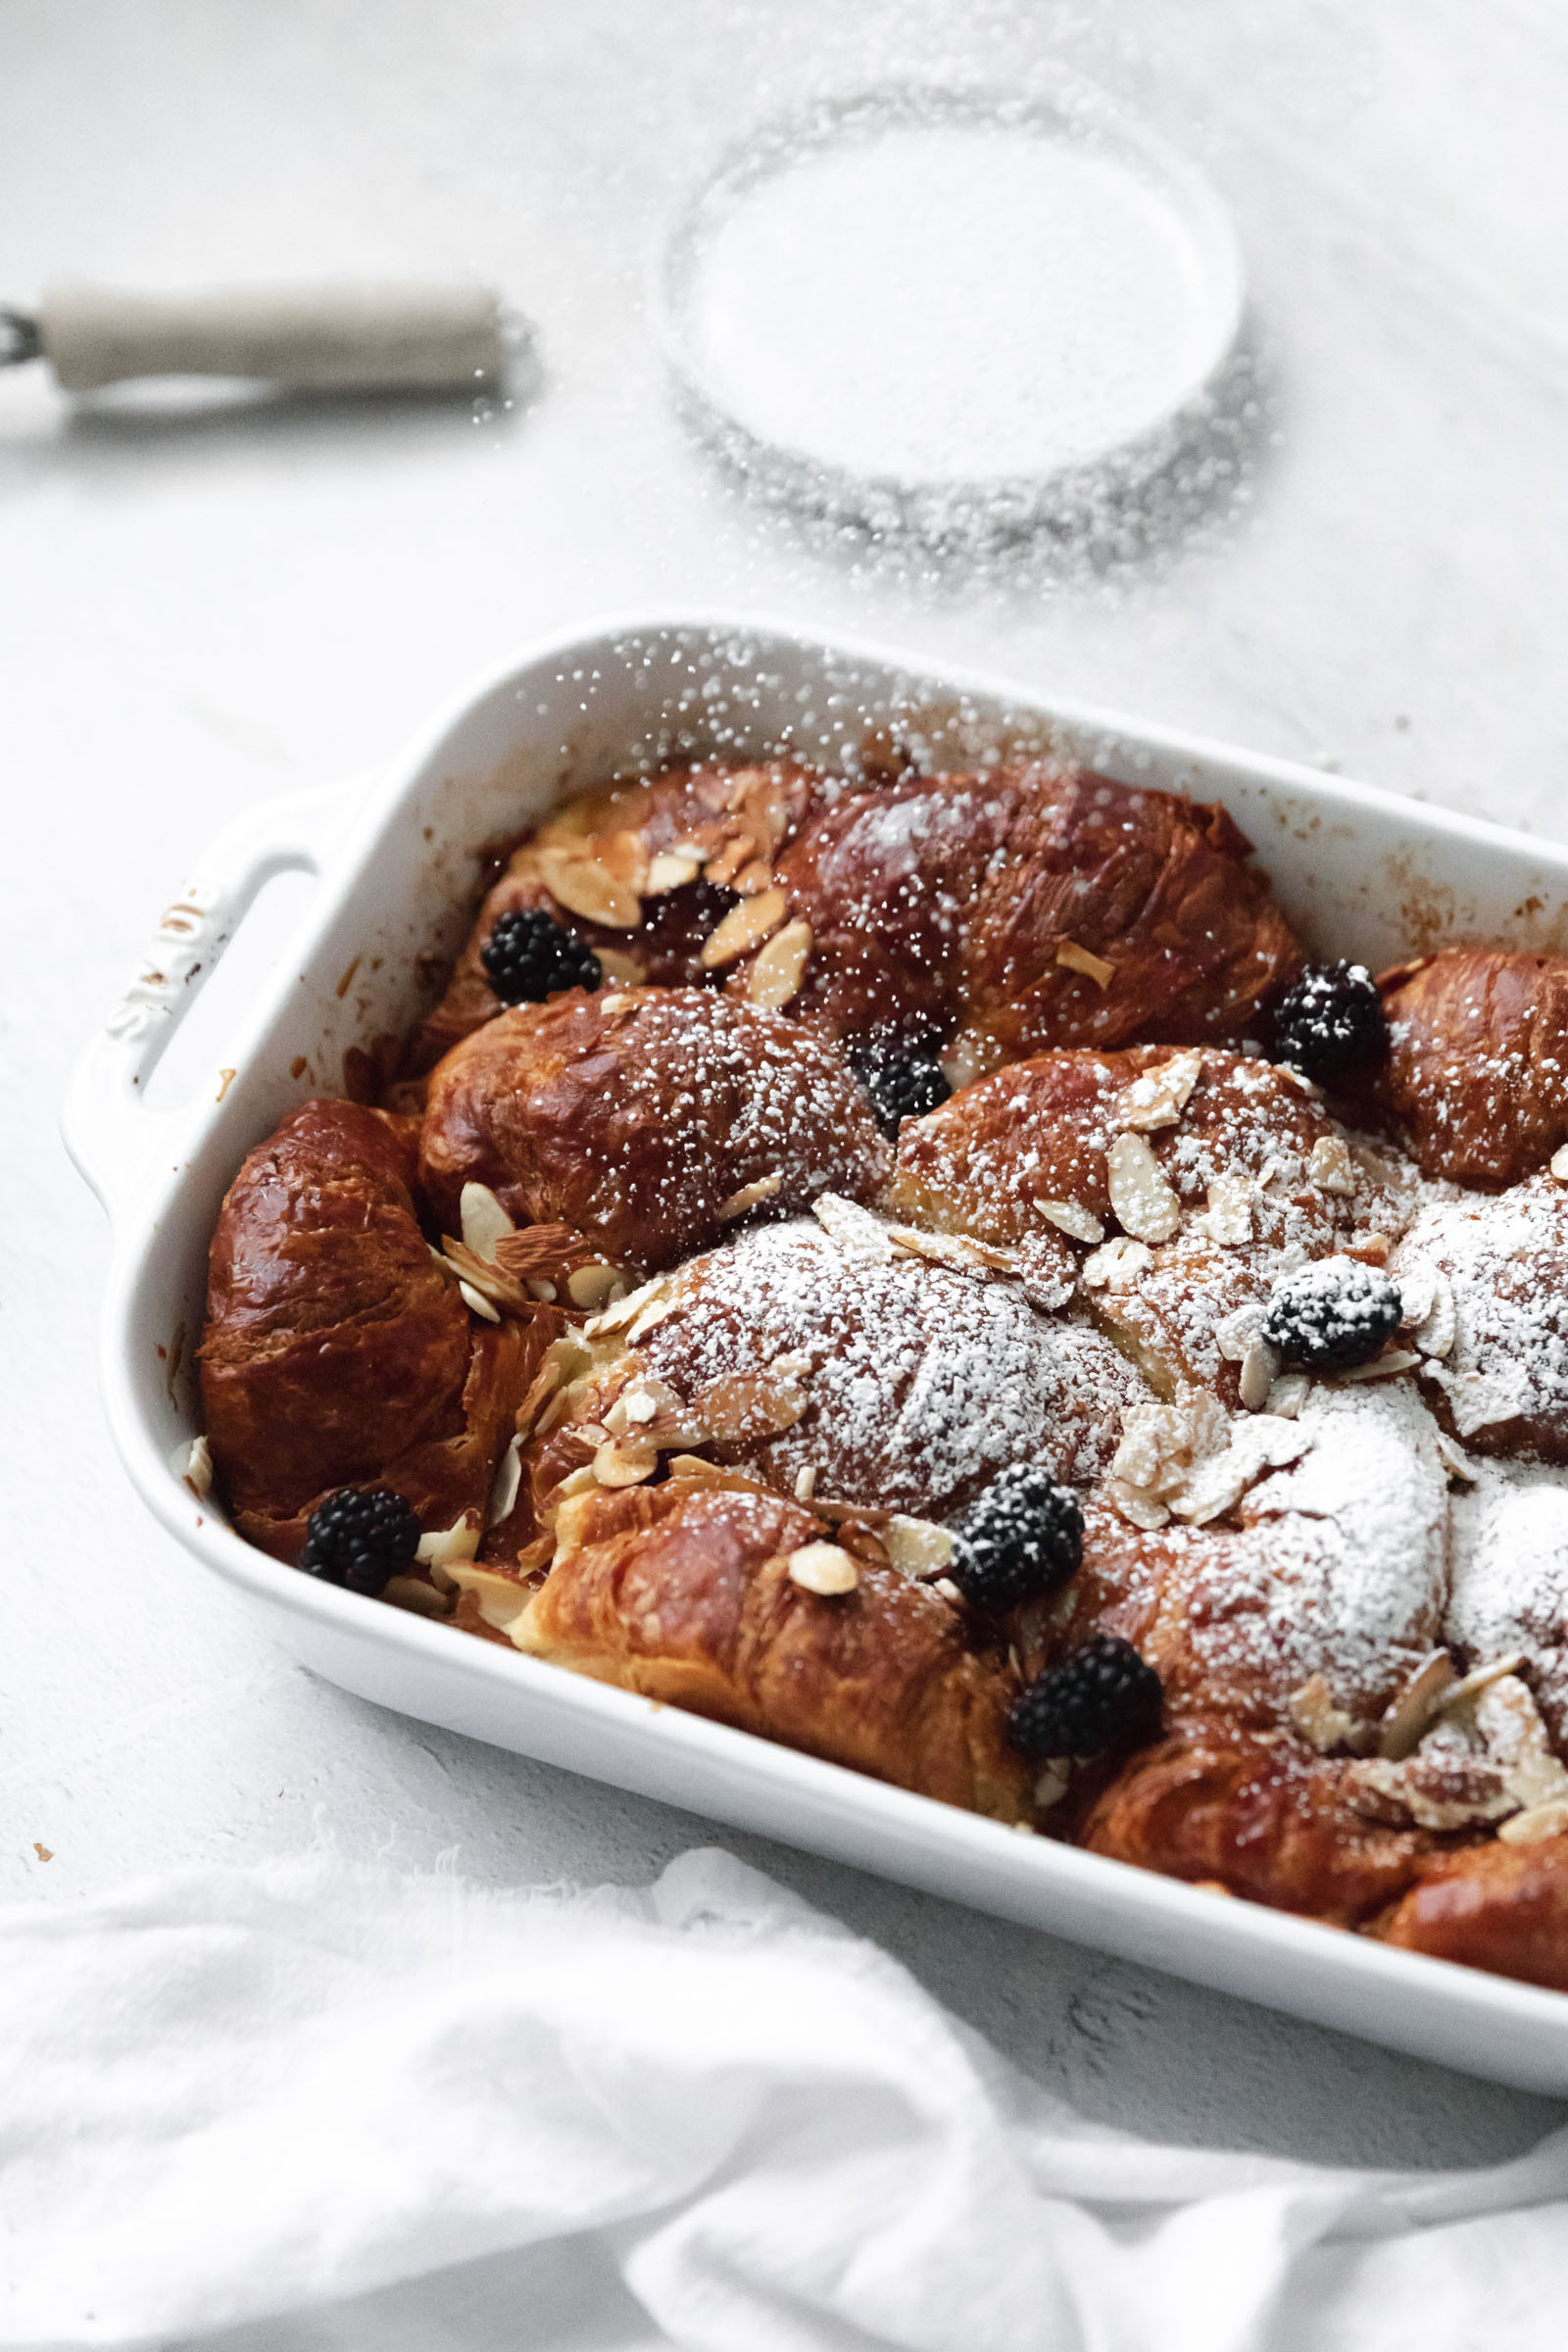 almond croissant french toast bake